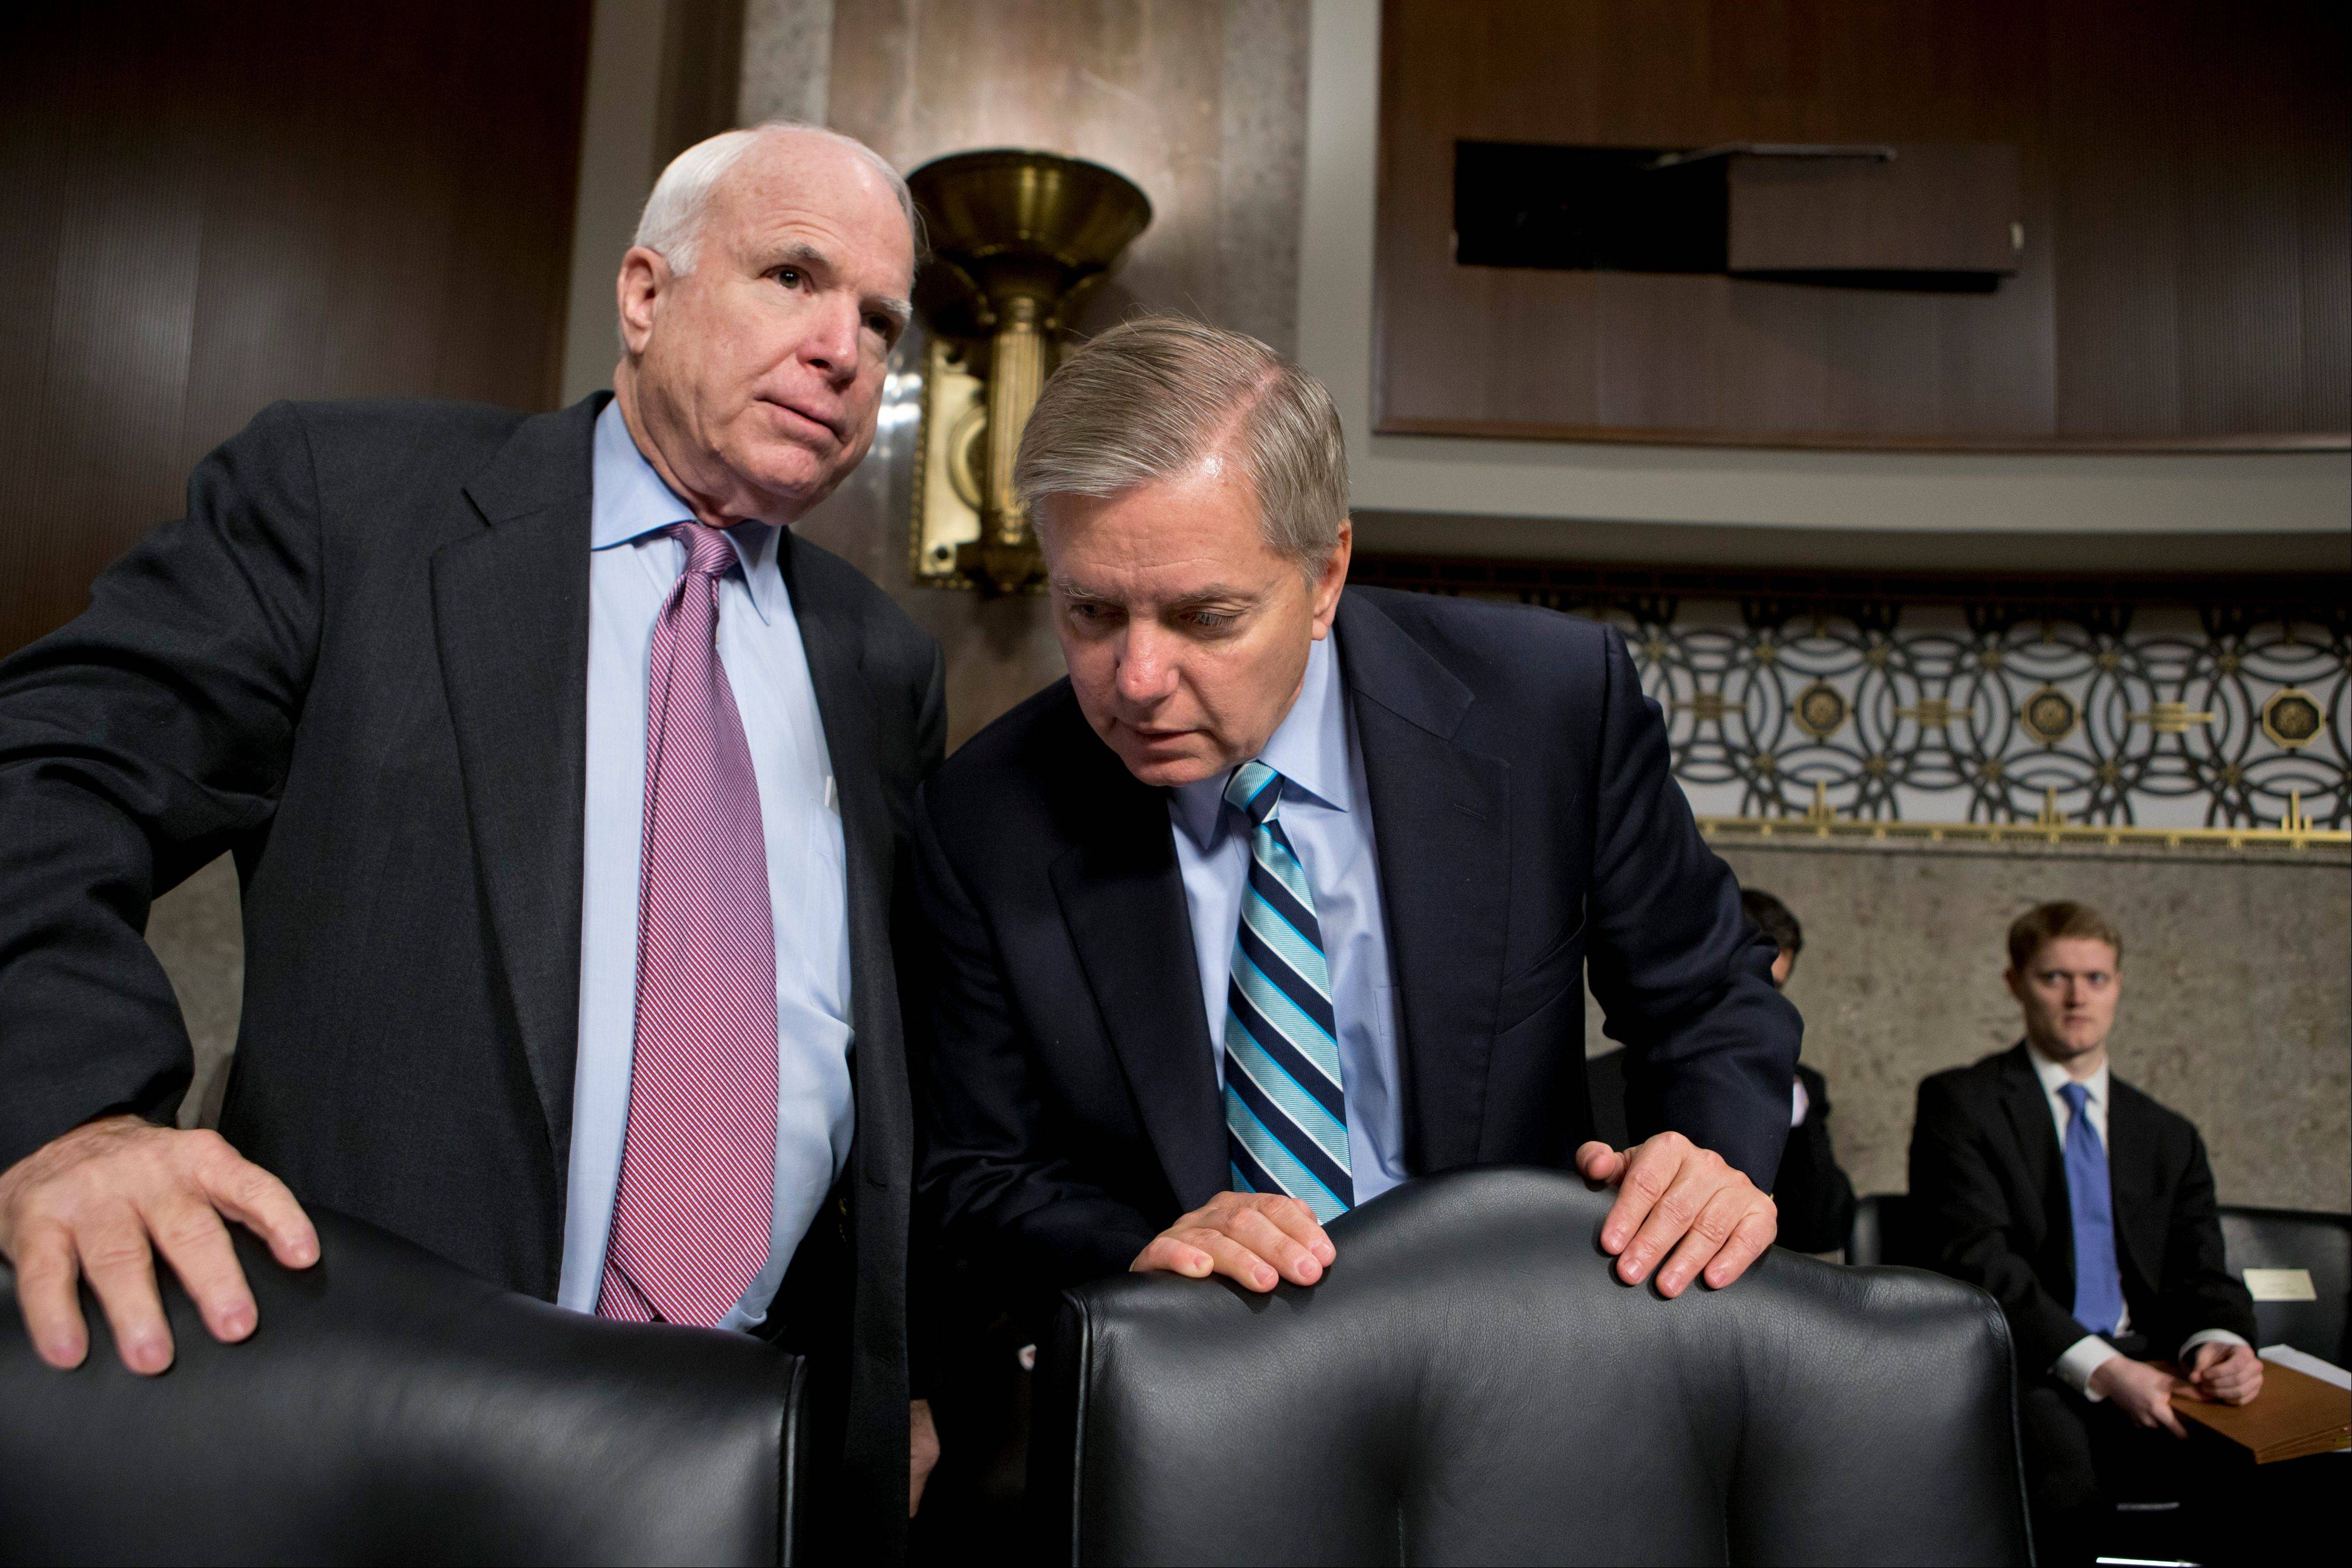 Republican Sens. John McCain, left, and Lindsey Graham confer at the start of a Senate Armed Services Committee hearing on the appointment Chuck Hagel to be the next Secretary of Defense on Feb. 14.